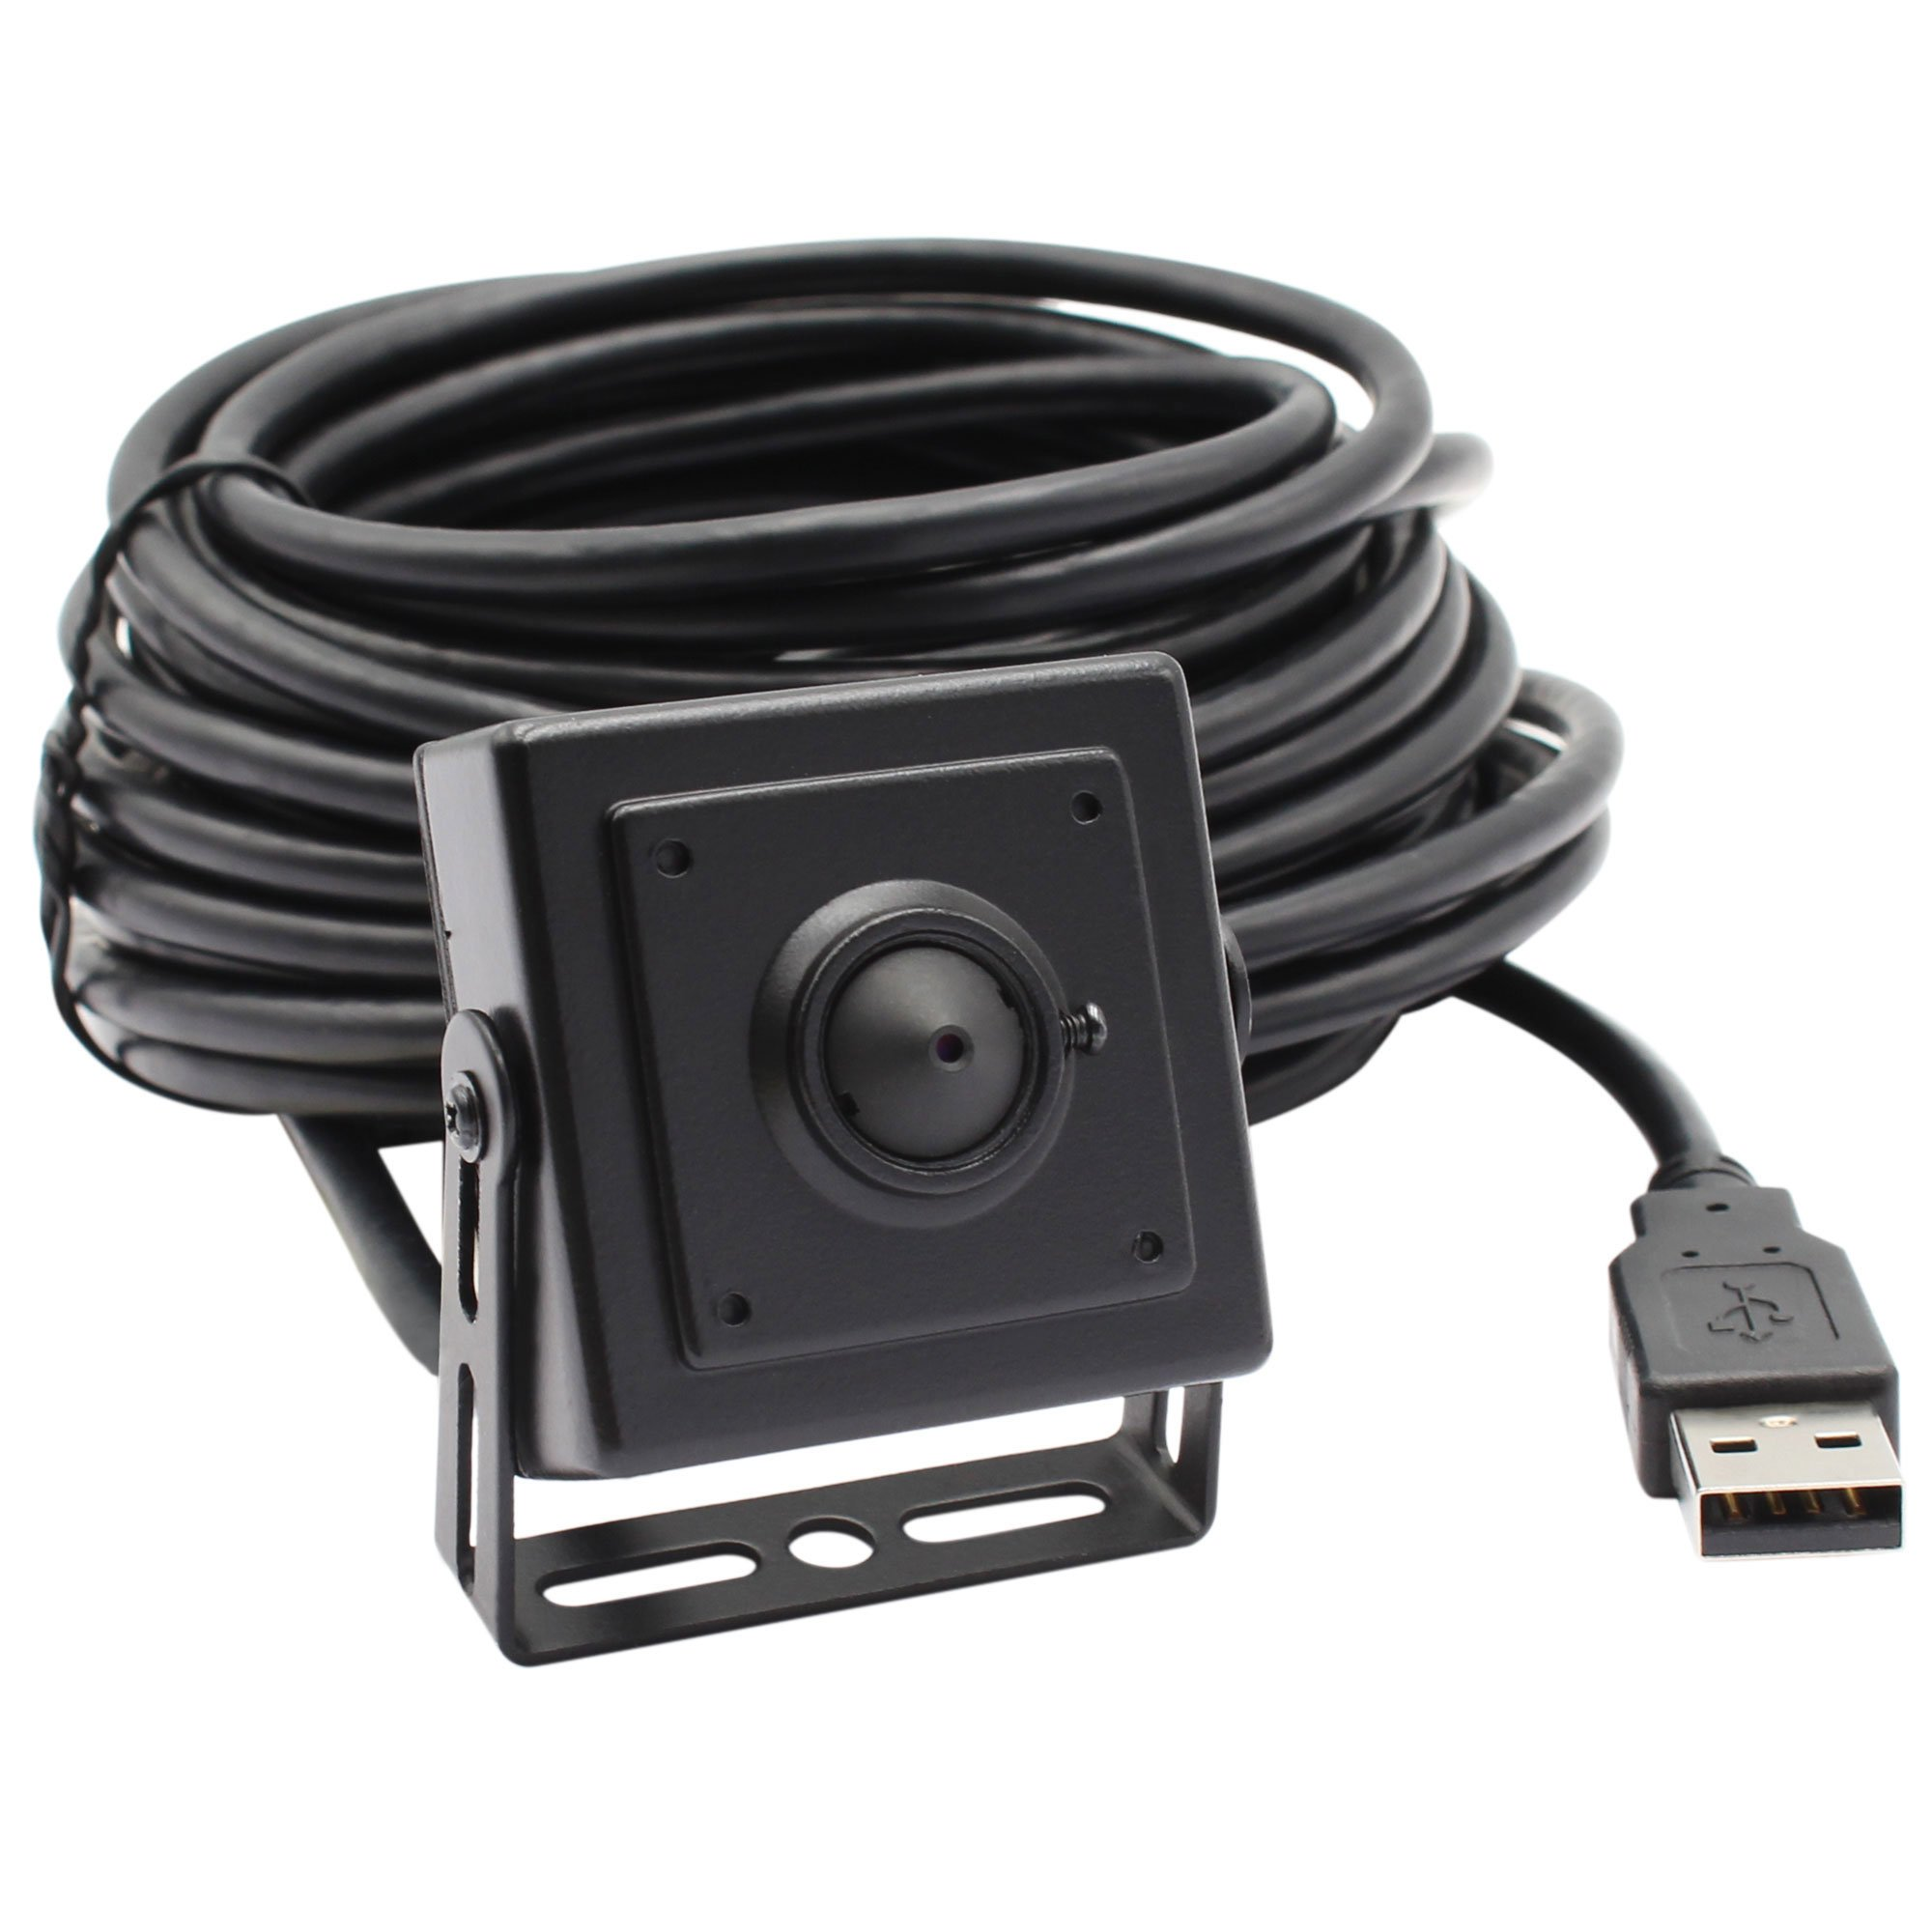 ELP Pinhole Mini USB Cameras for ATM Machine Use with Hidden&face Detection Function